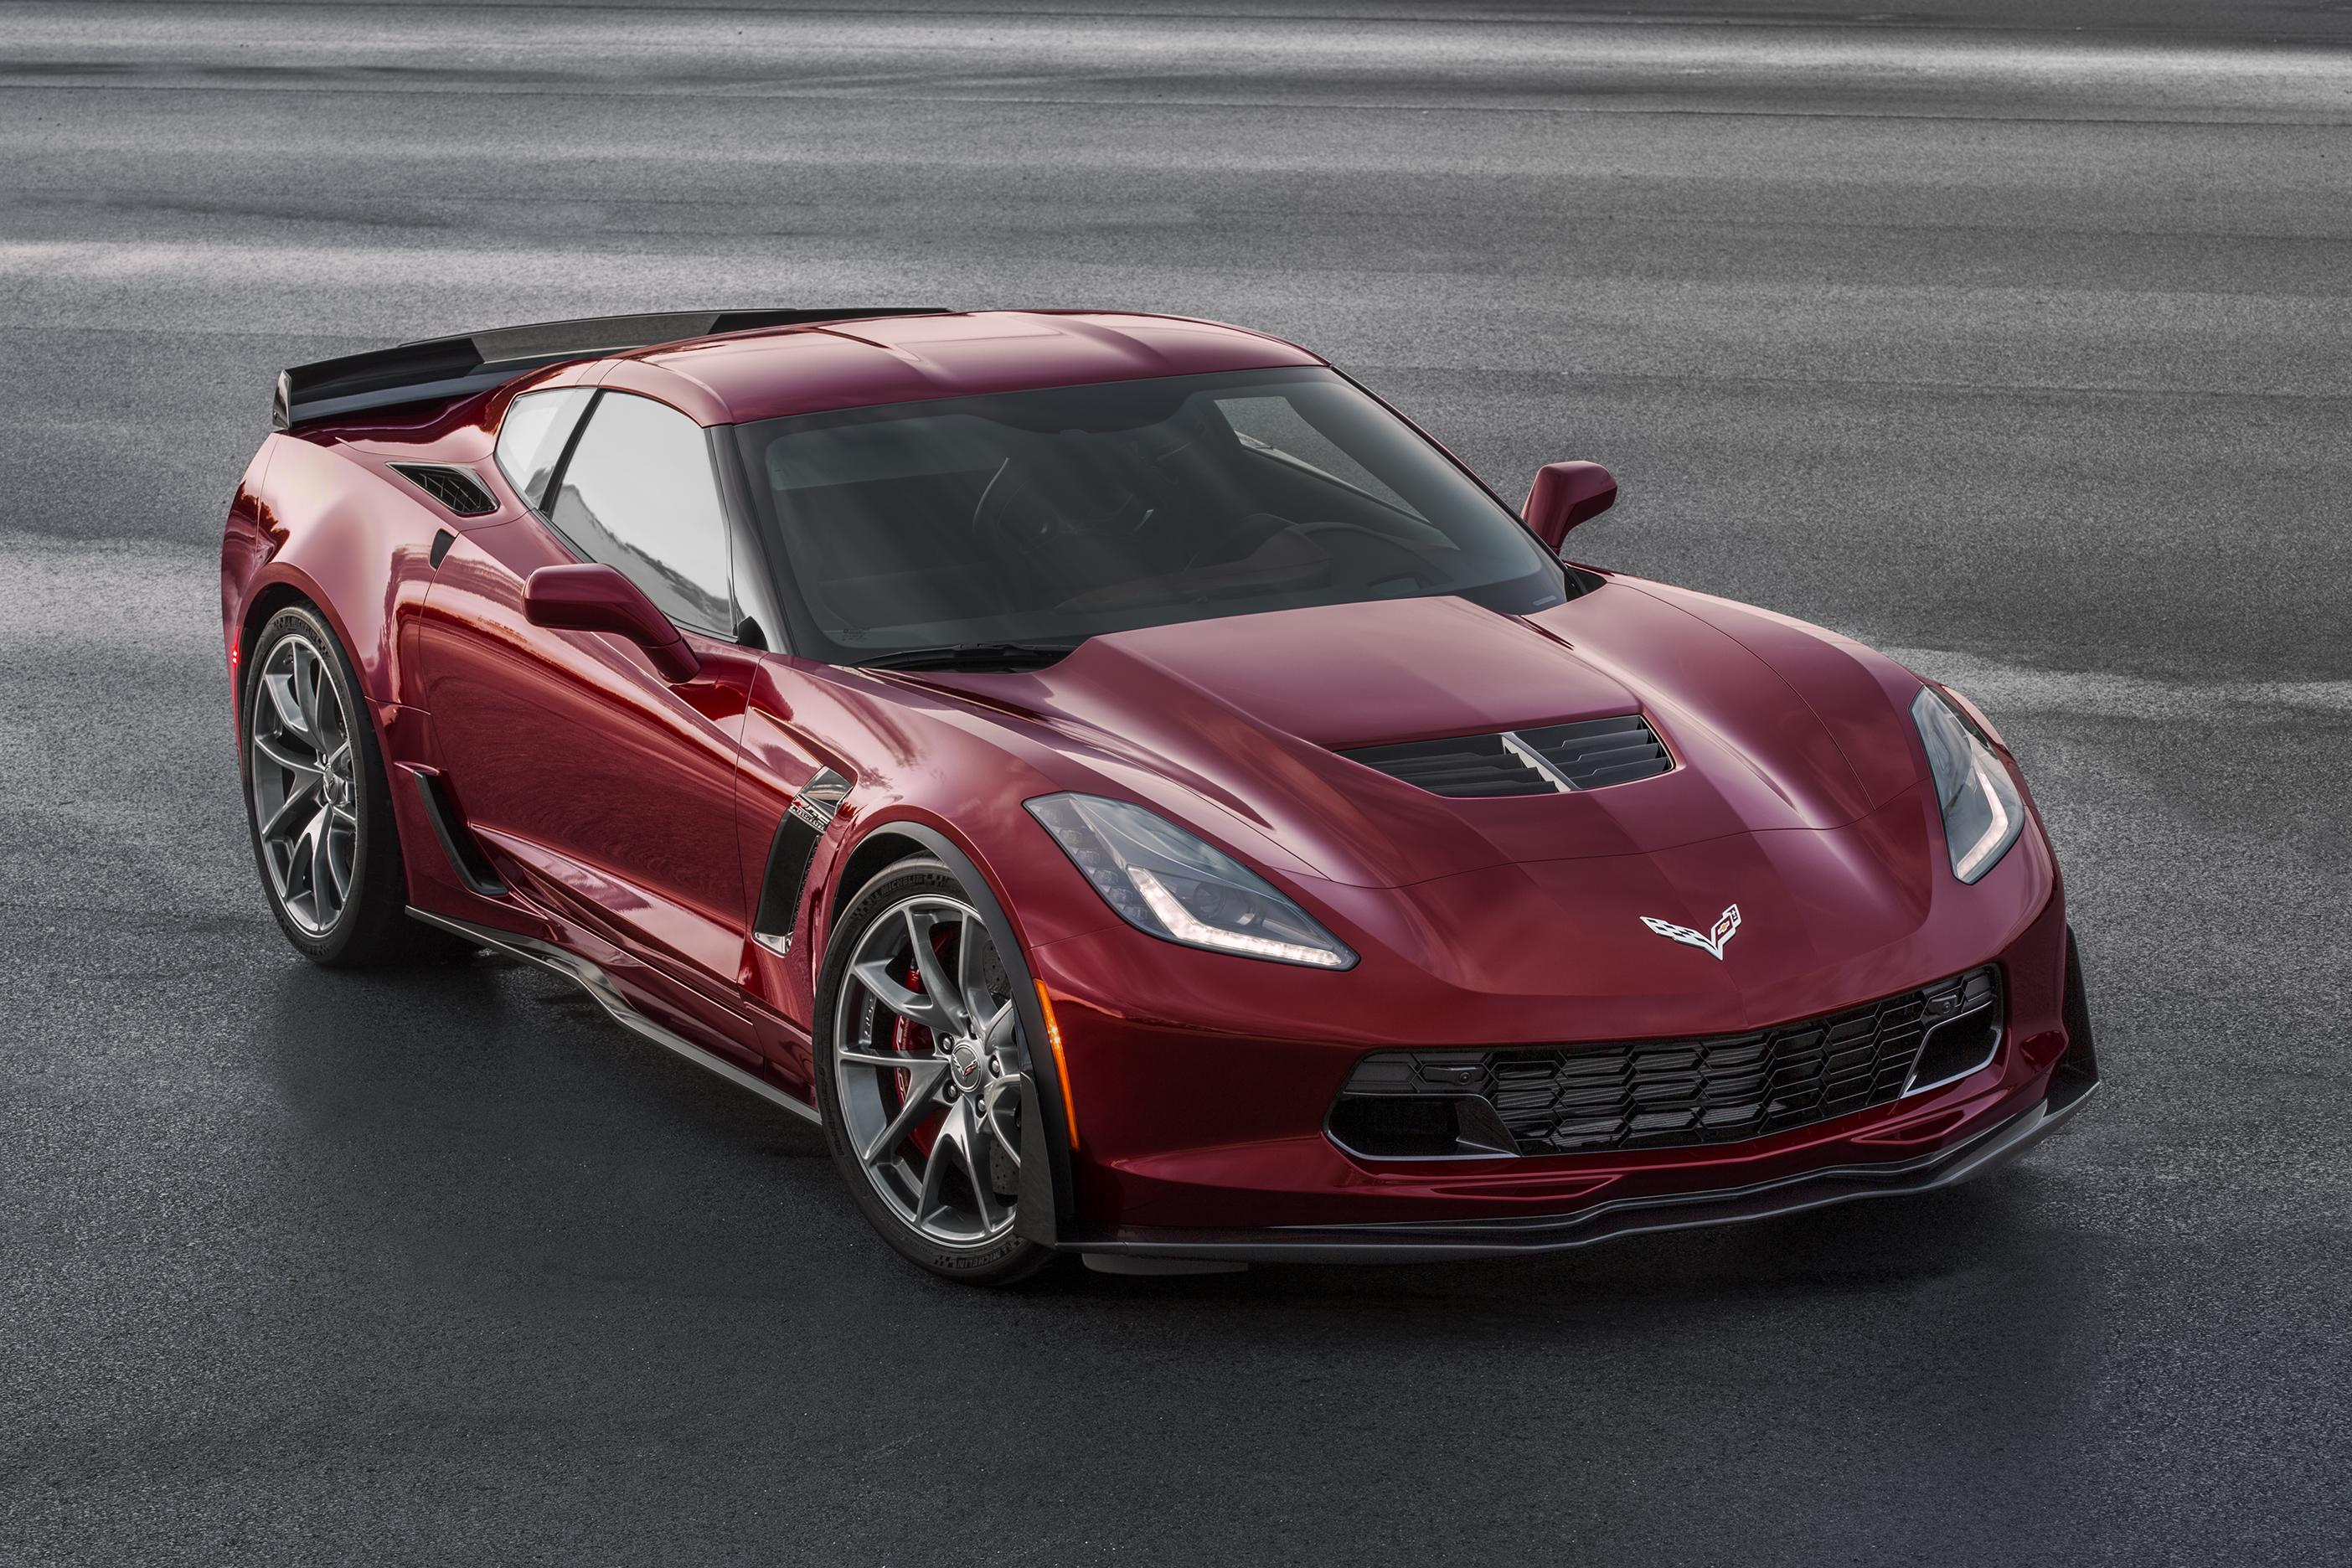 Corvette Sales Are Down Yet Prices Are Going Up News